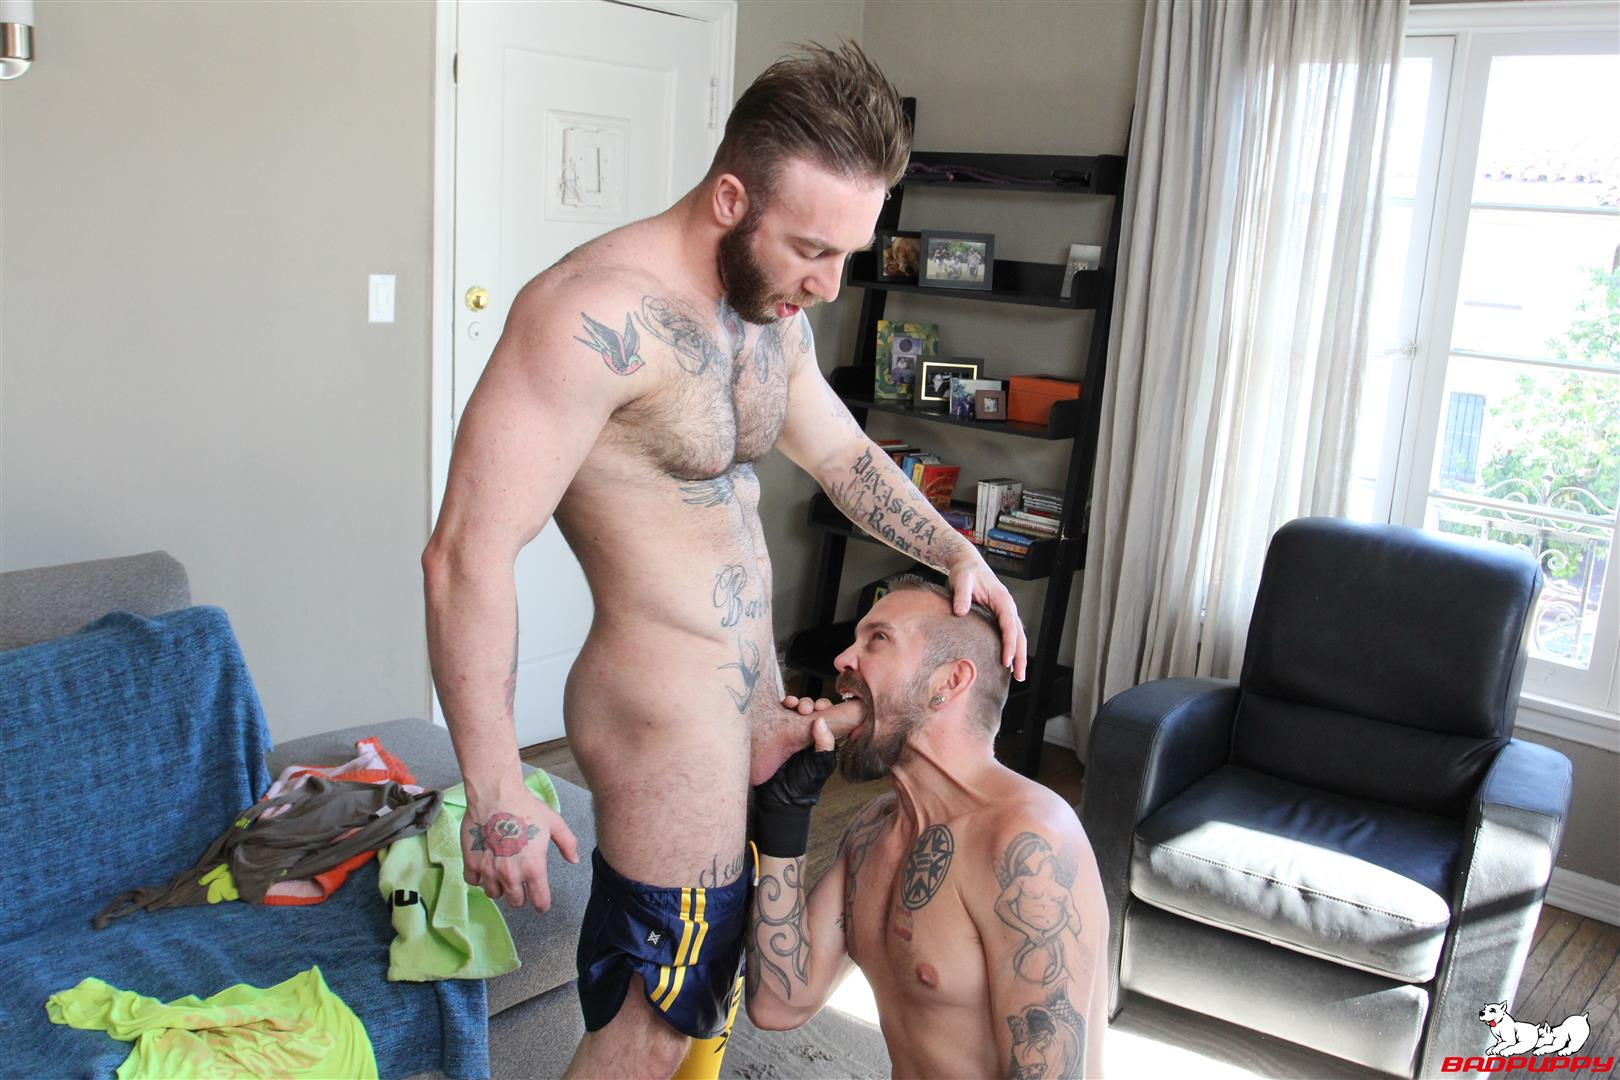 Badpuppy-Manual-Scalco-and-Stephen-Raw-Big-Uncut-Cocks-Fucking-Bareback-03 Getting Bareback Fucked By A Big Thick Uncut Cock